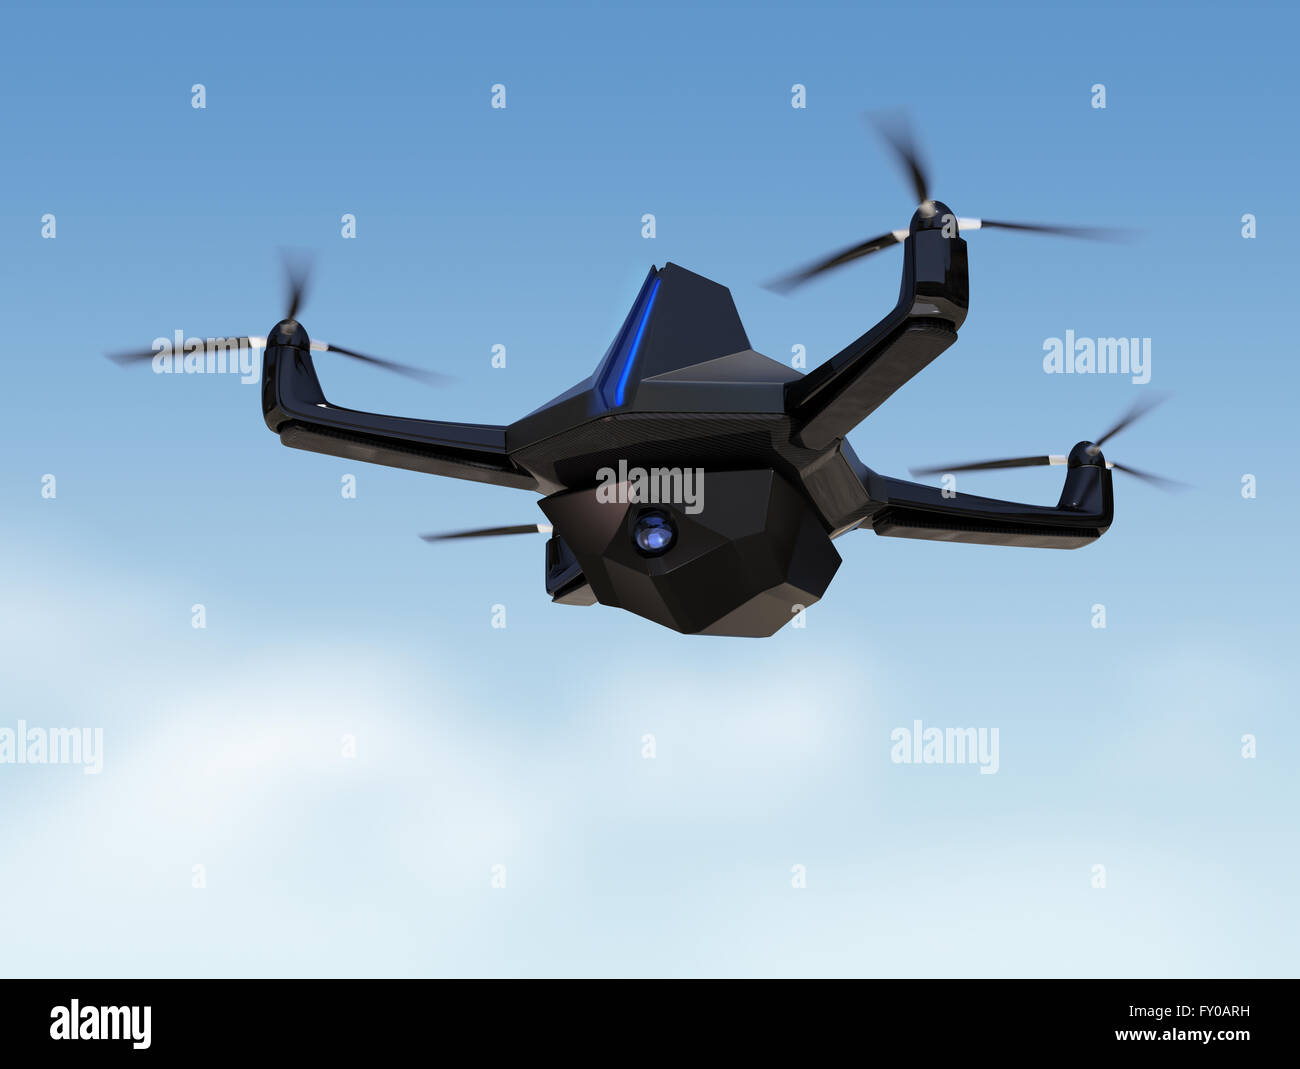 Autonomous Unmanned Drone With Surveillance Camera Flying In The Sky